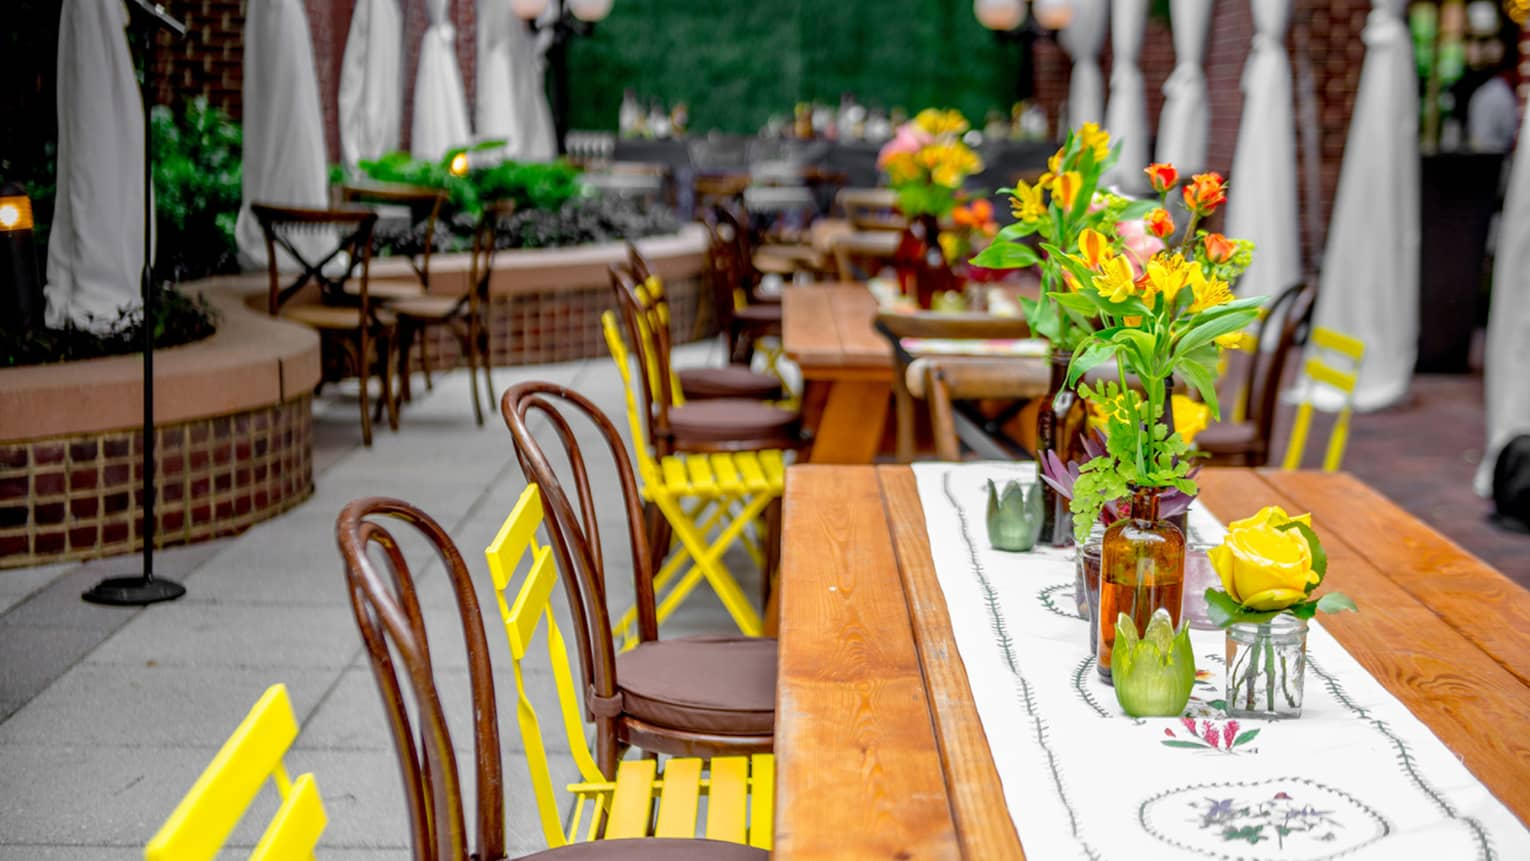 Colourful flowers, chairs, linens around outdoor patio dining tables